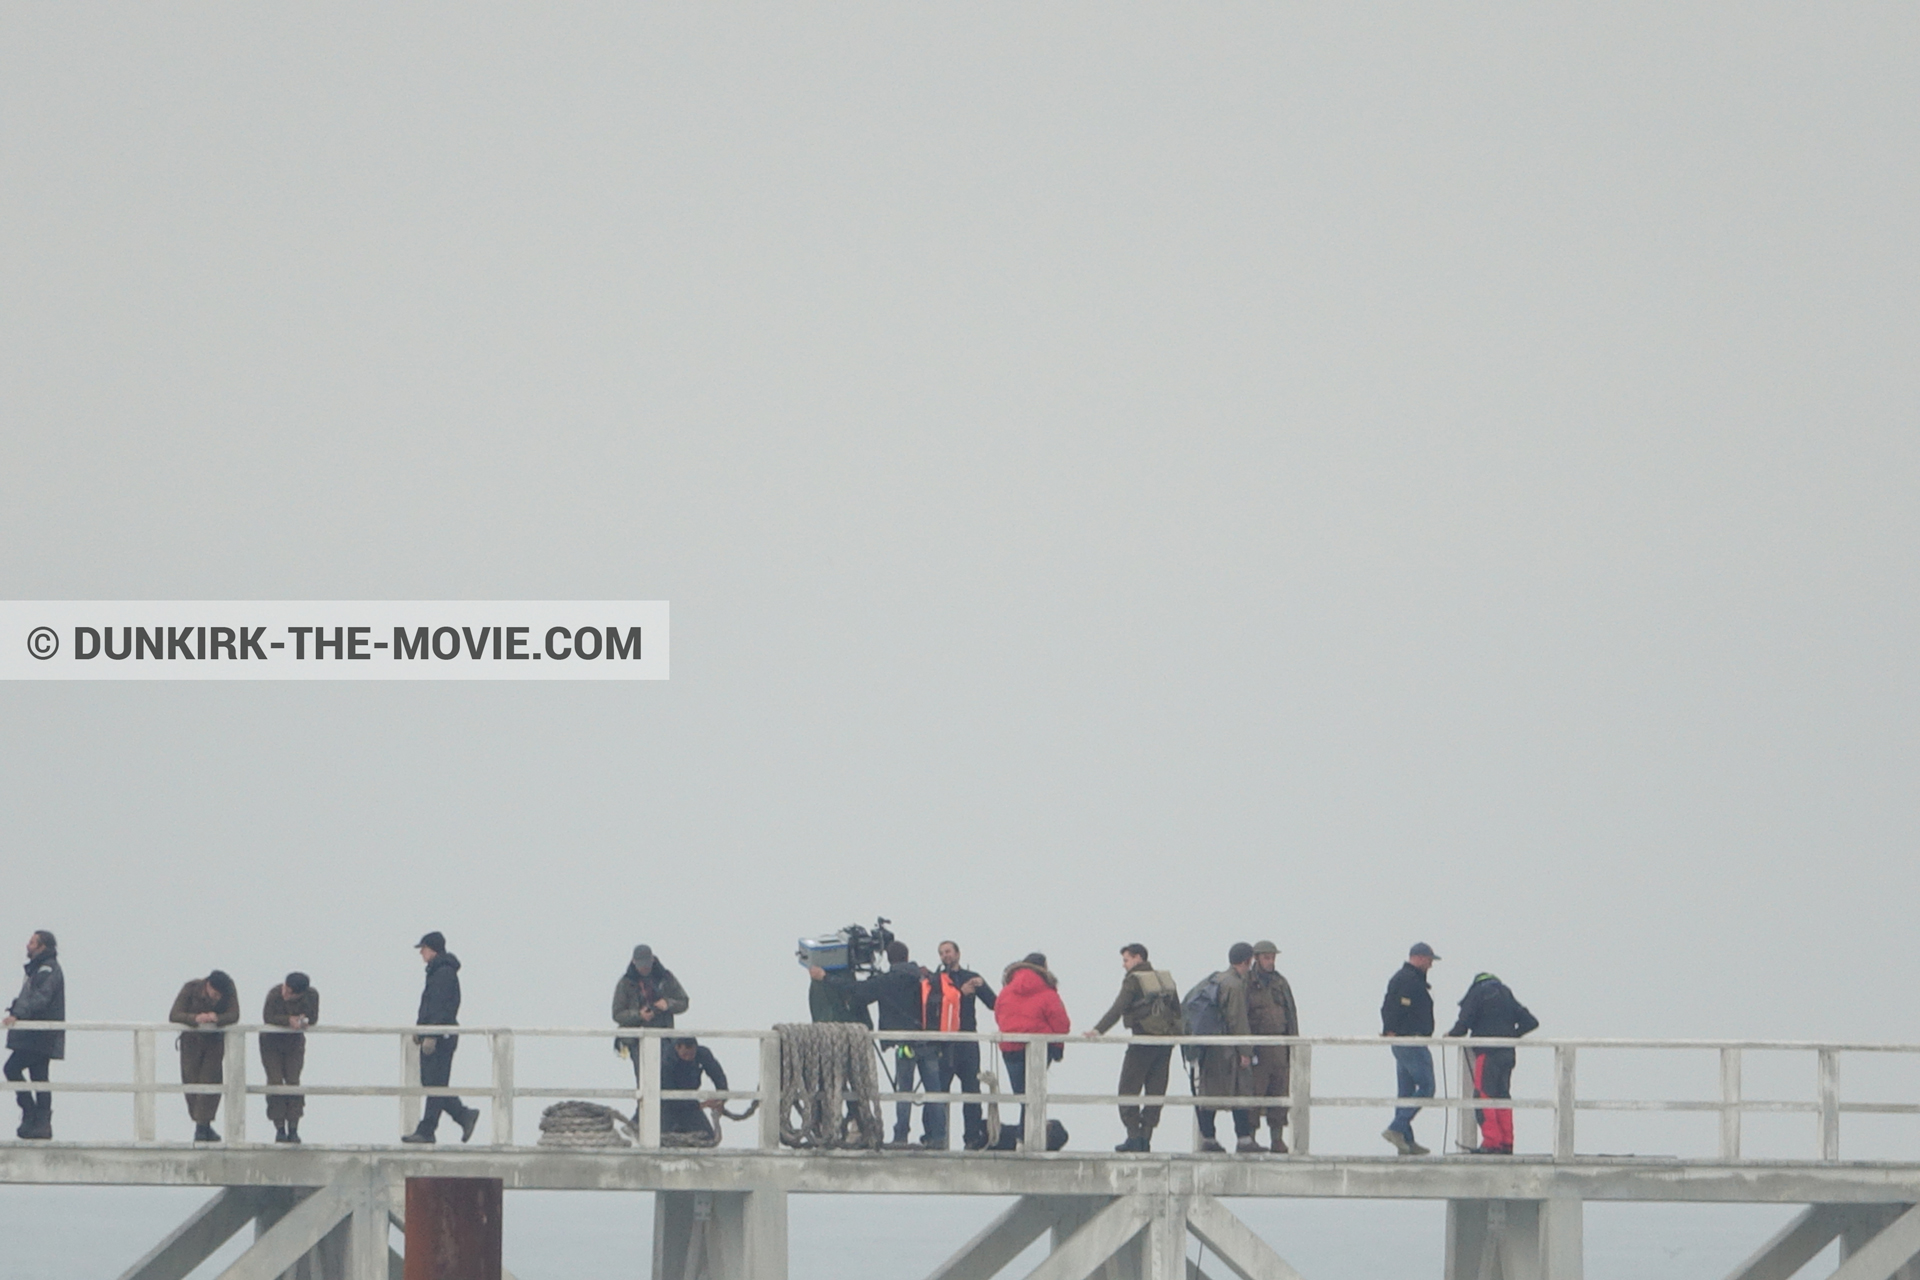 Picture with IMAX camera, grey sky, Hoyte van Hoytema, EST pier, technical team,  from behind the scene of the Dunkirk movie by Nolan